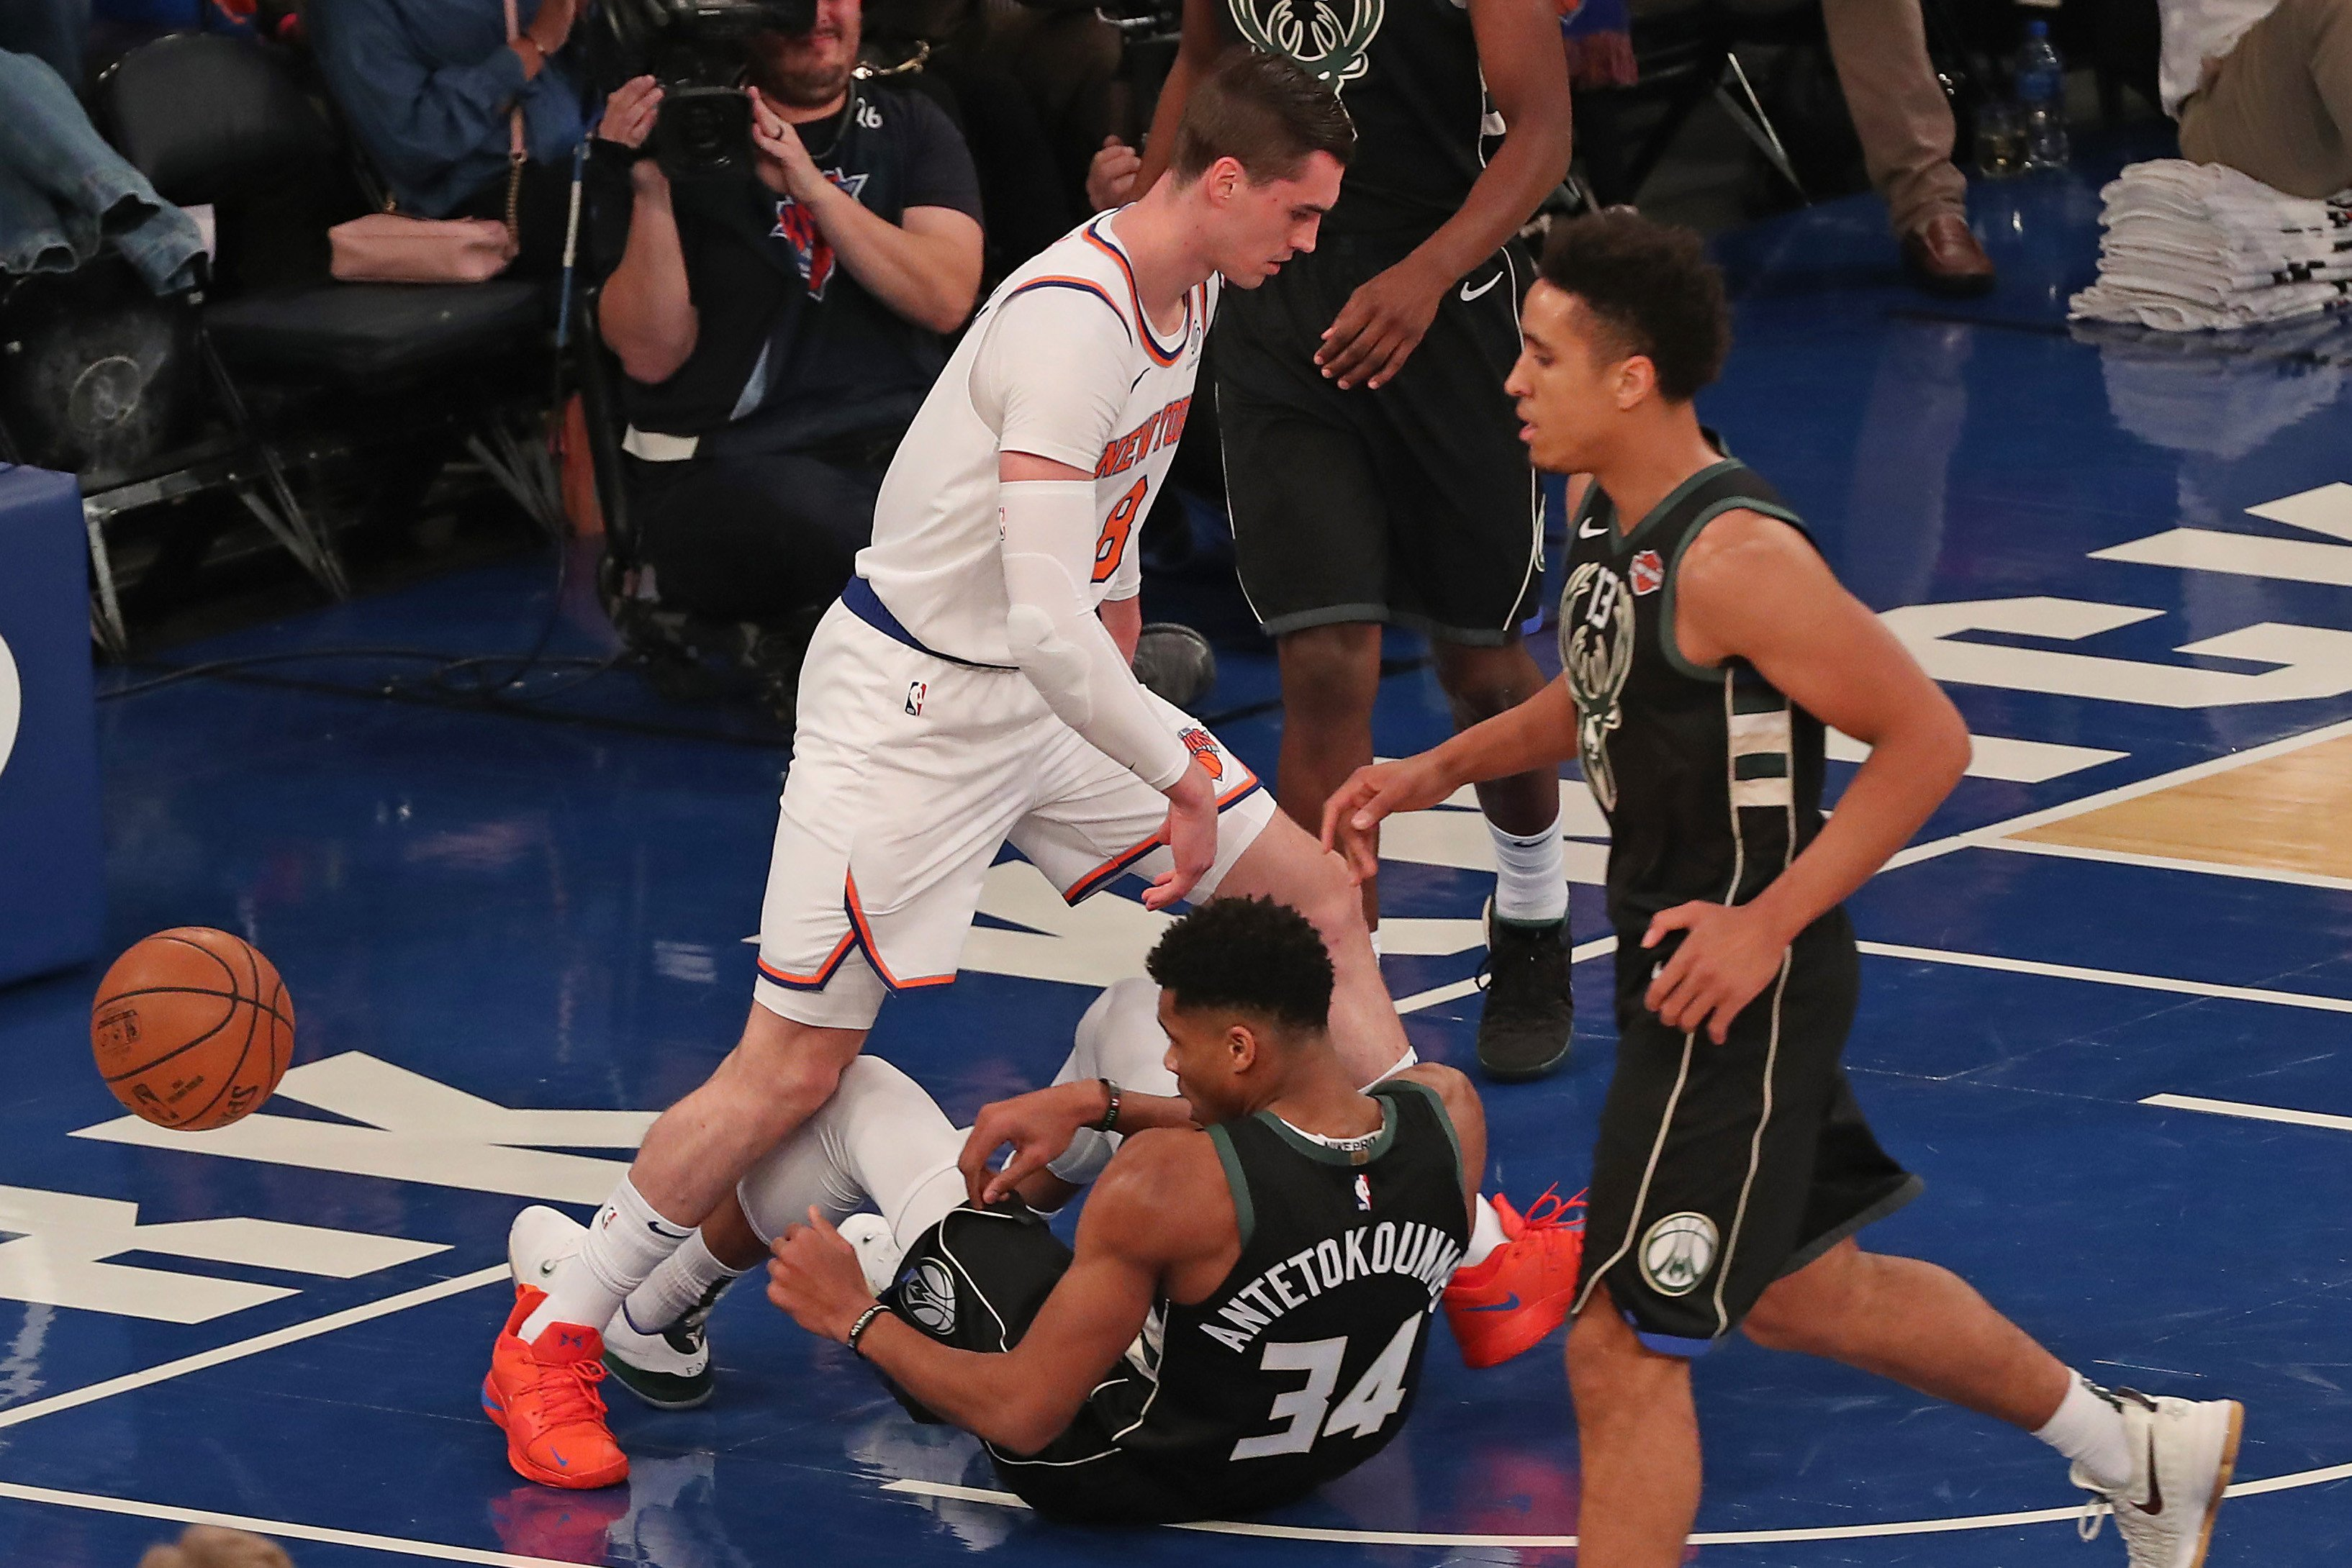 Greek Freak threatens Knick after face-off: 'Punch him in his nut'